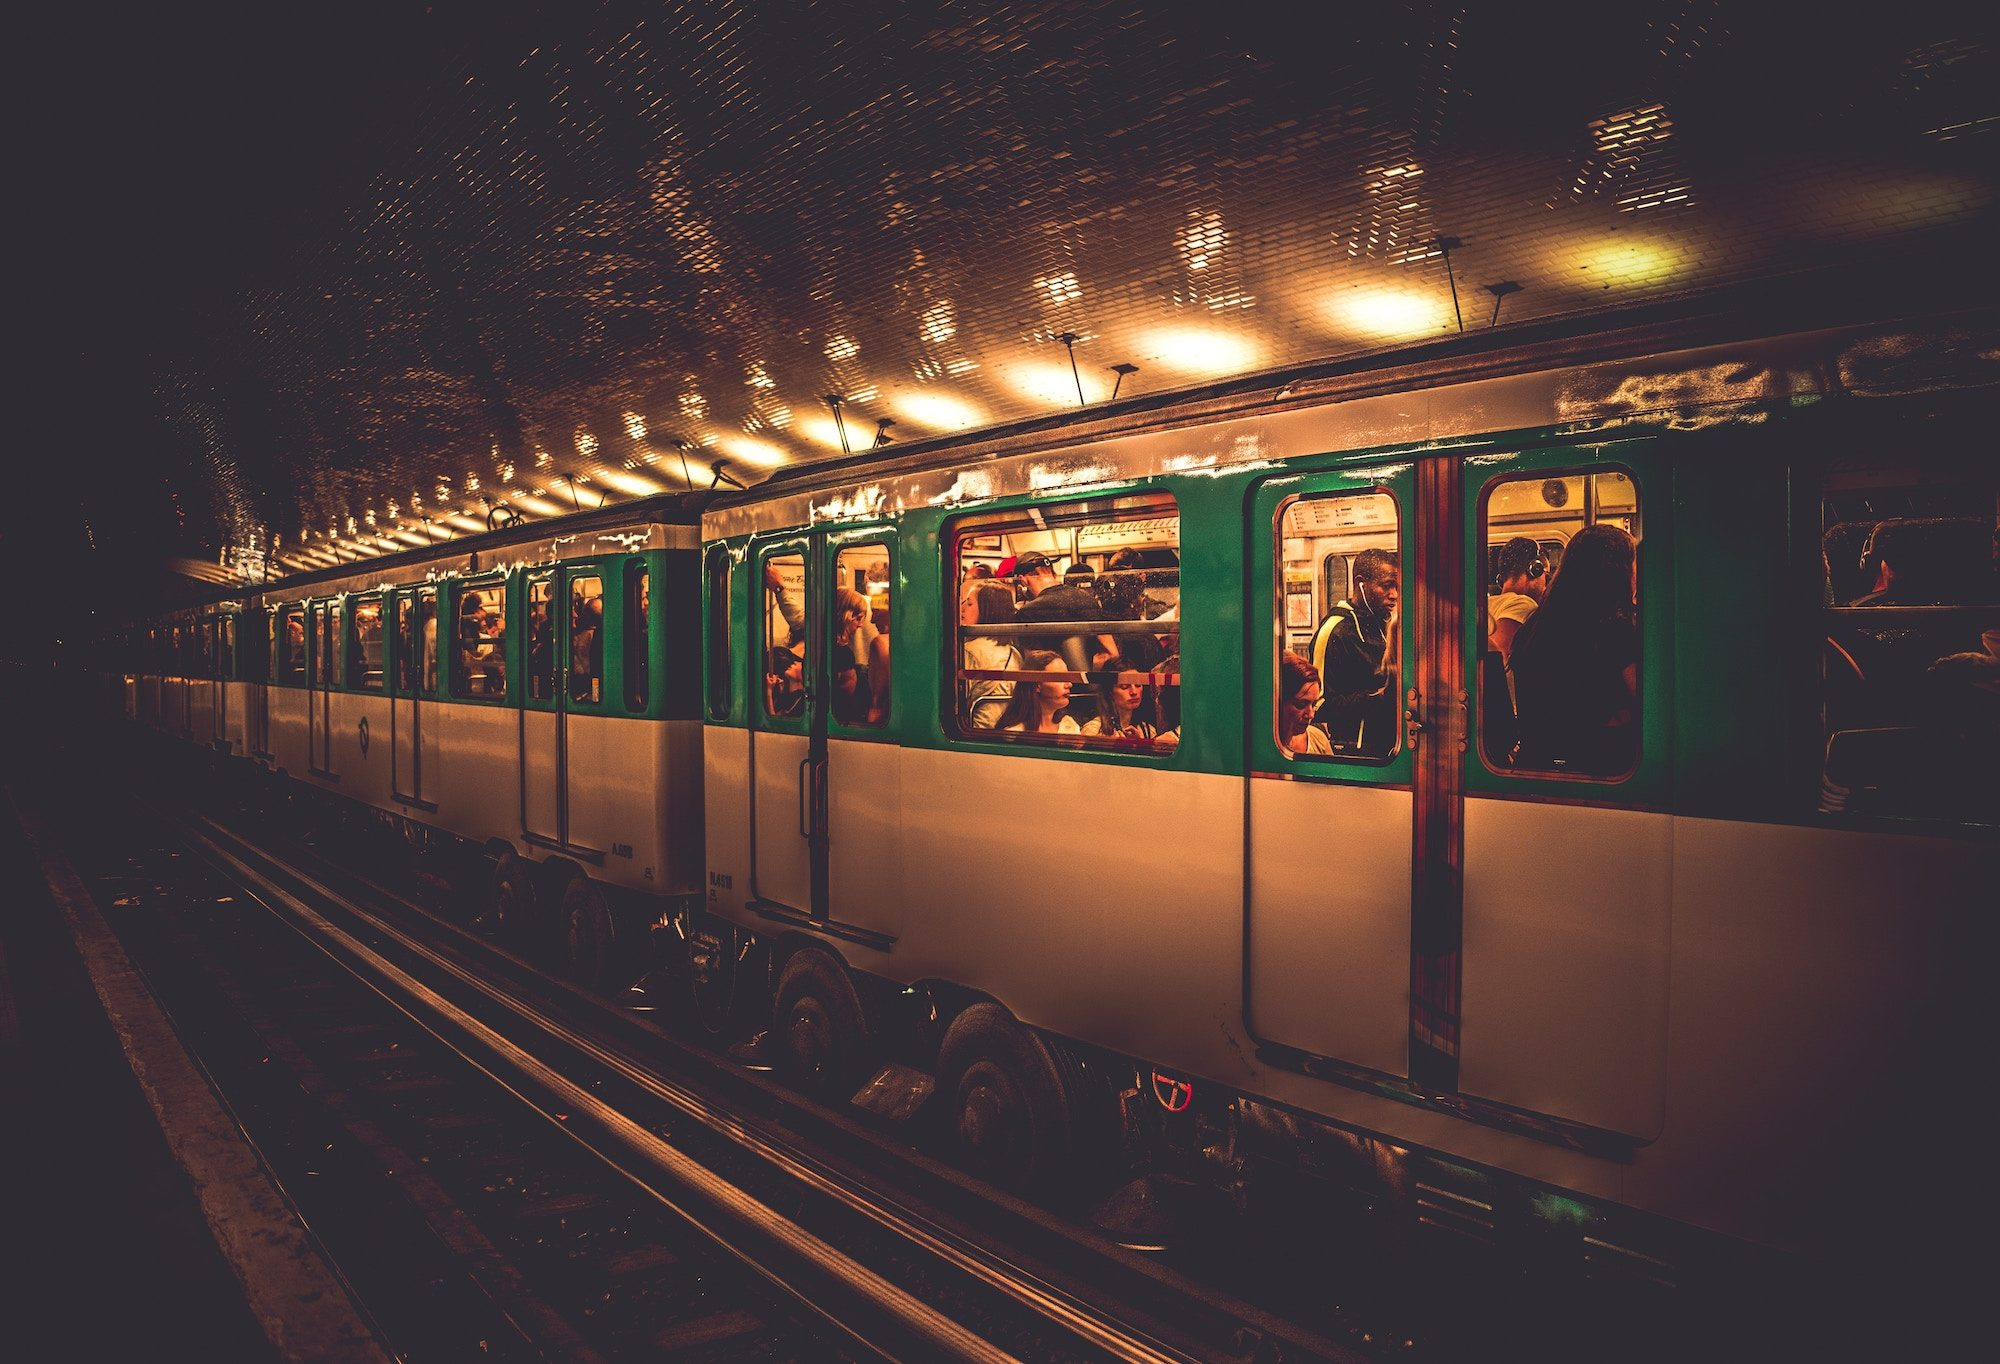 A metro pulling in at a metro station in Paris with passengers seen through the windows.